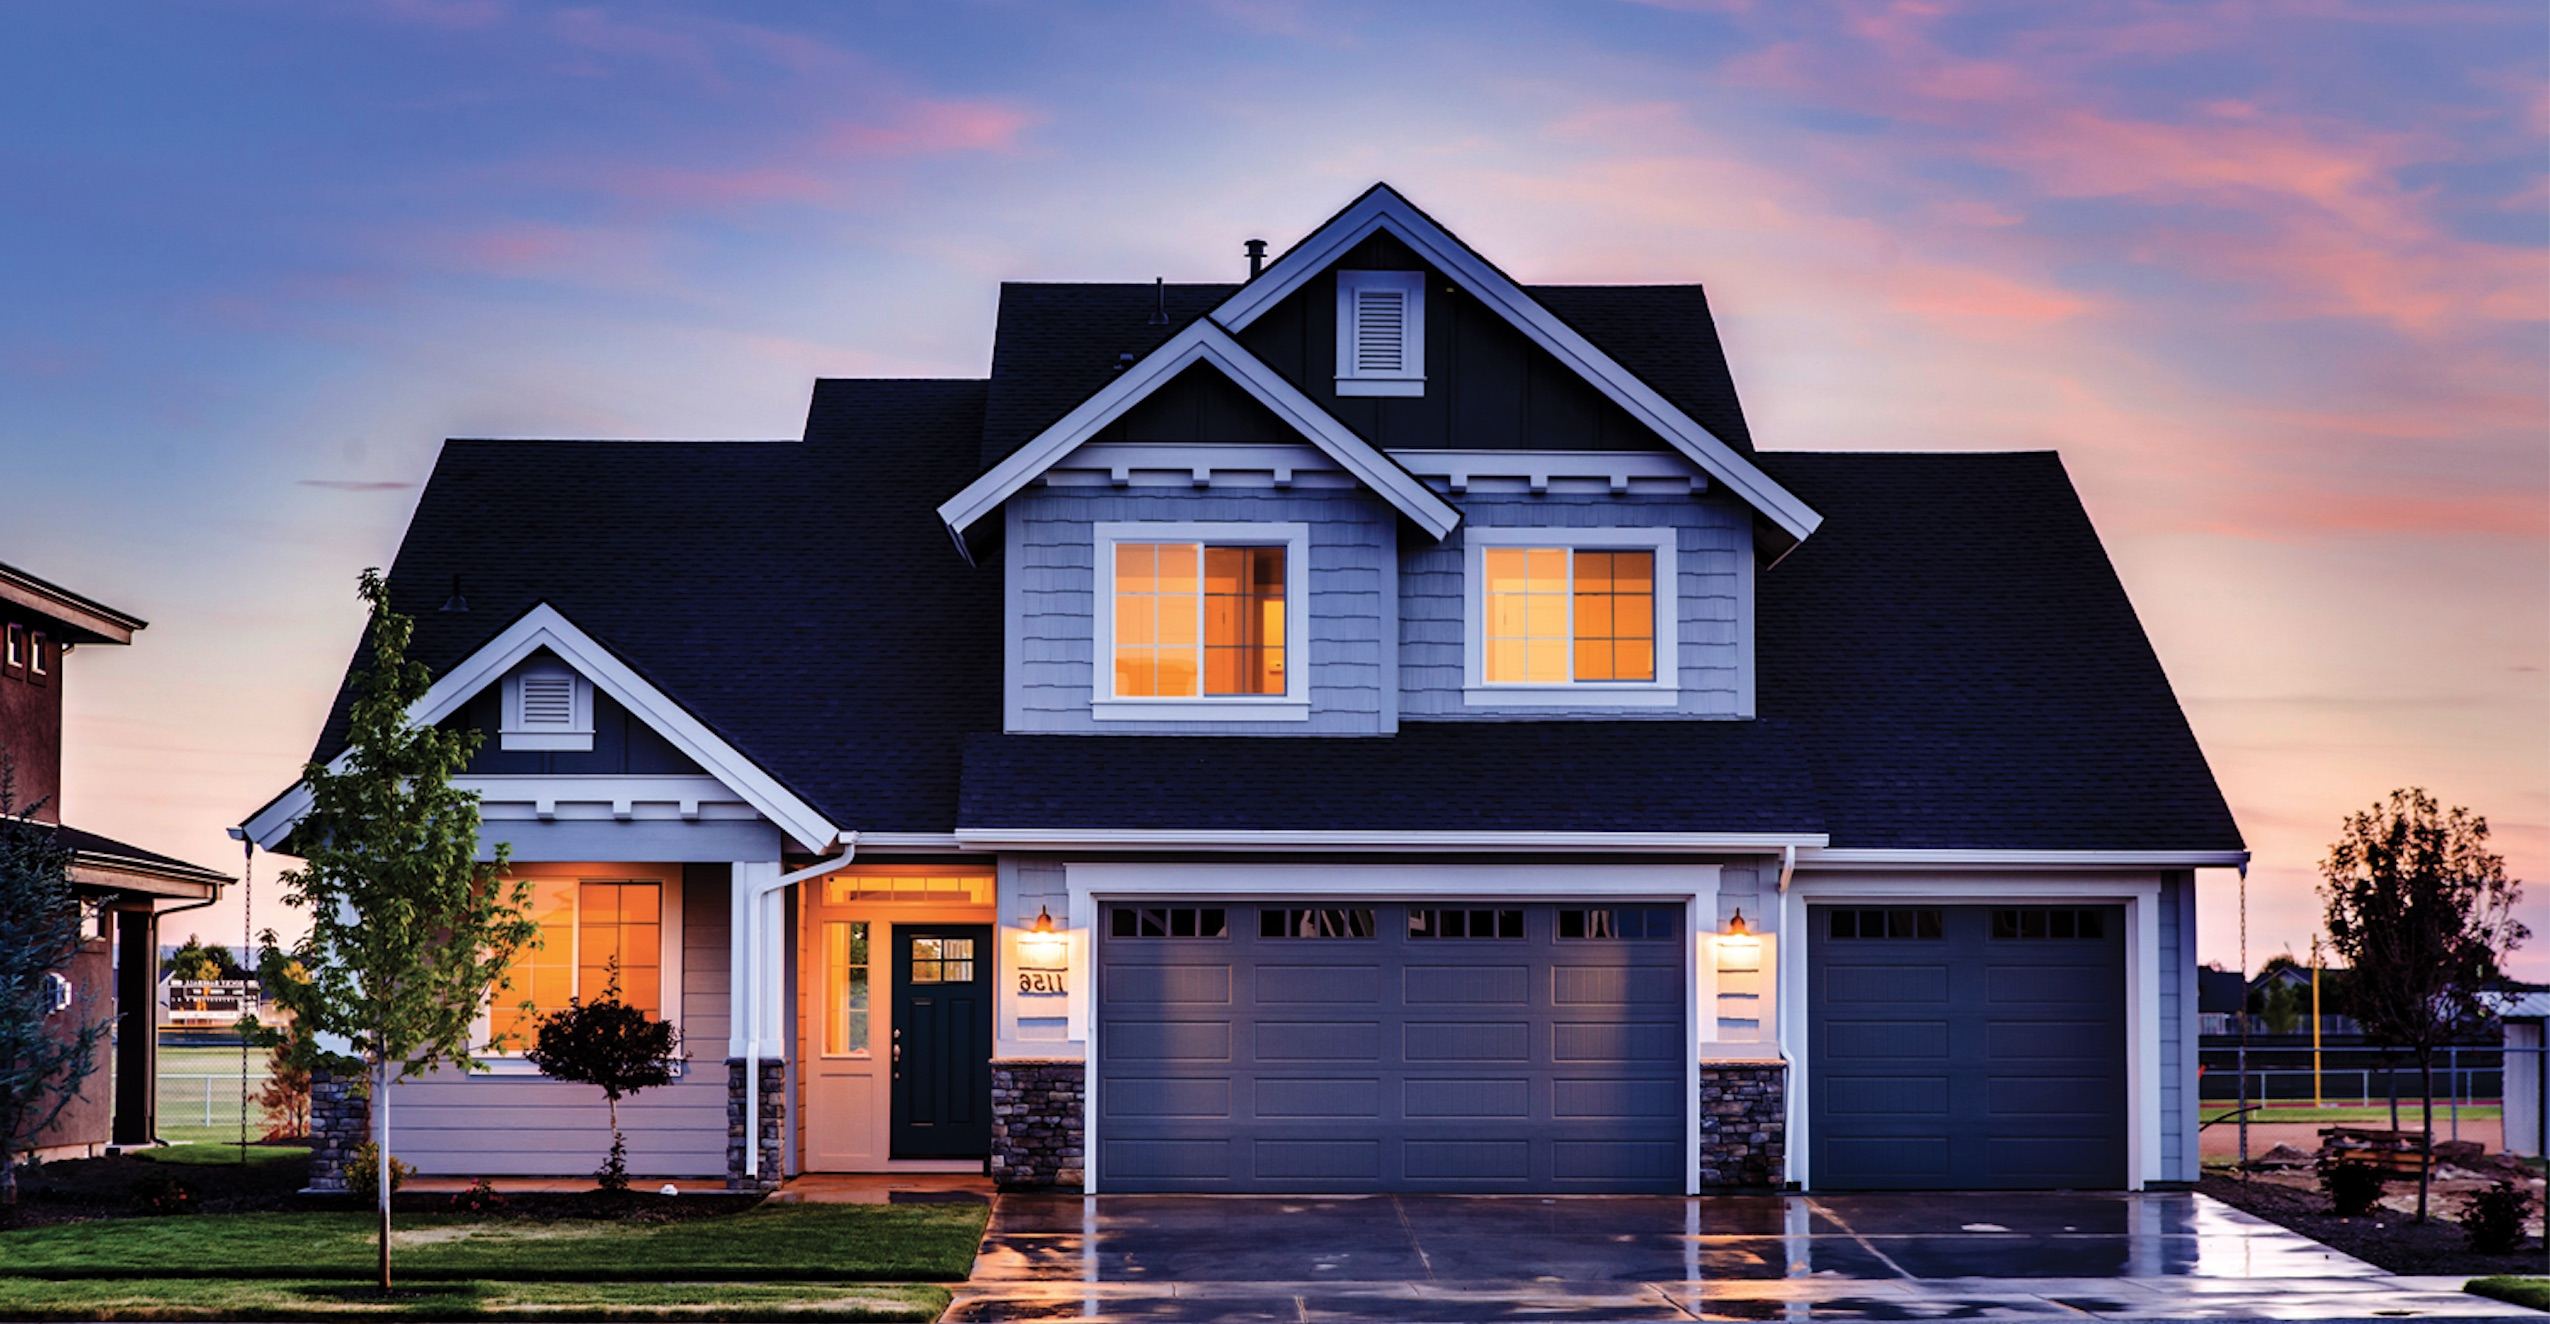 Finding an Affordable Roofing Contractor